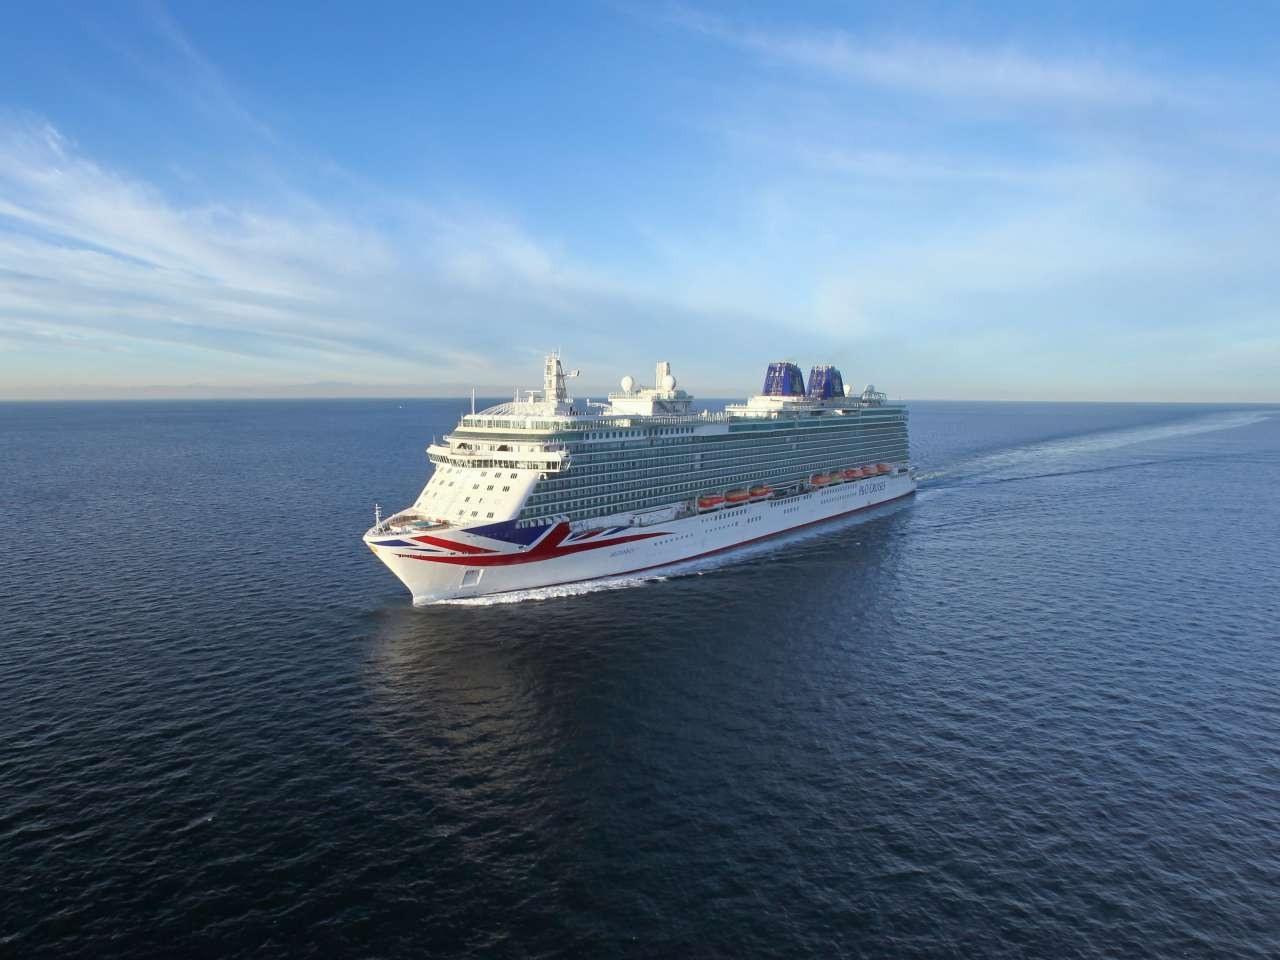 P&o Cruises: 2019, 2020, 2021 And 2022 Cruise Holidays